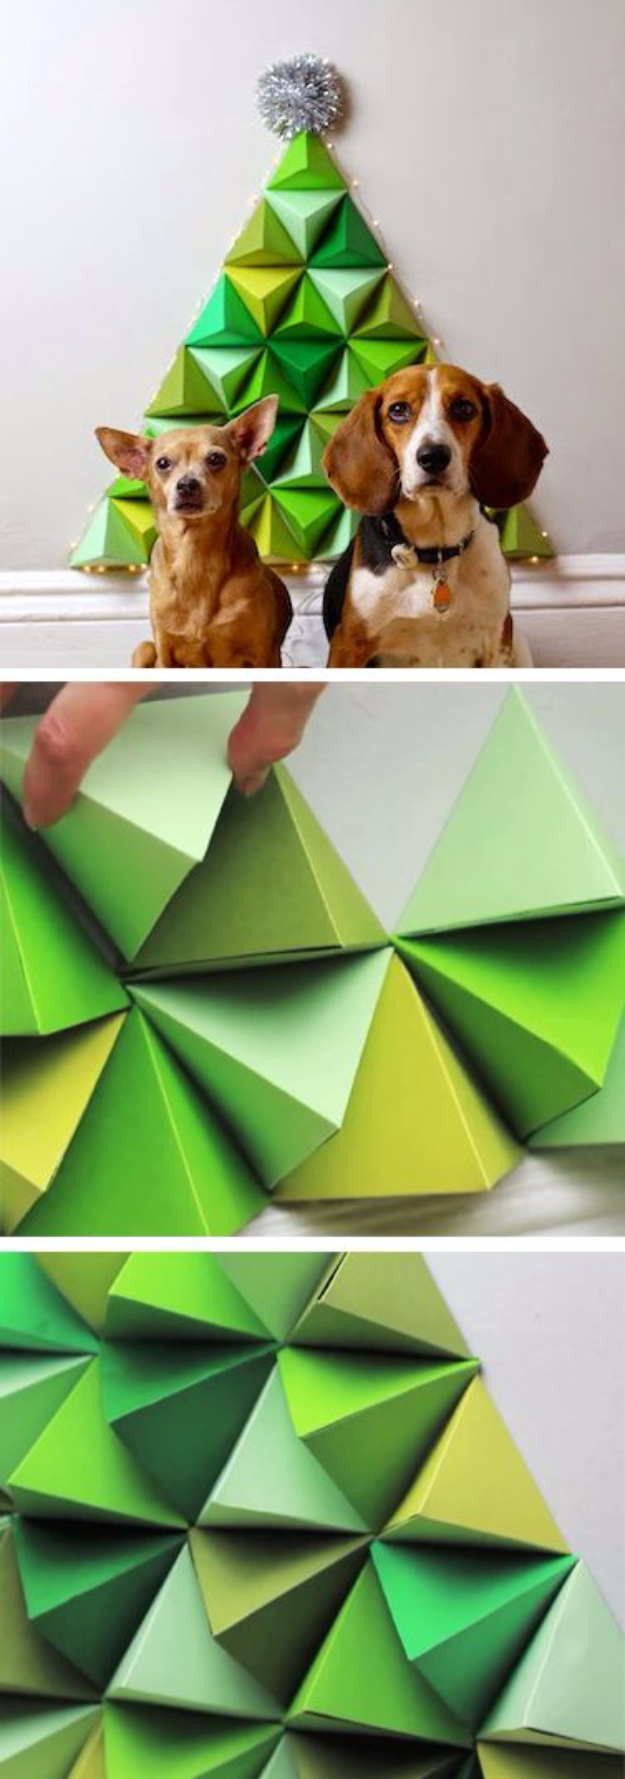 Best DIY Ideas for Your Christmas Tree - Geometric Paper Christmas Tree - Cool Handmade Ornaments, DIY Decorating Ideas and Ornament Tutorials - Cheap Christmas Home Decor - Xmas Crafts #christmas #diy #crafts